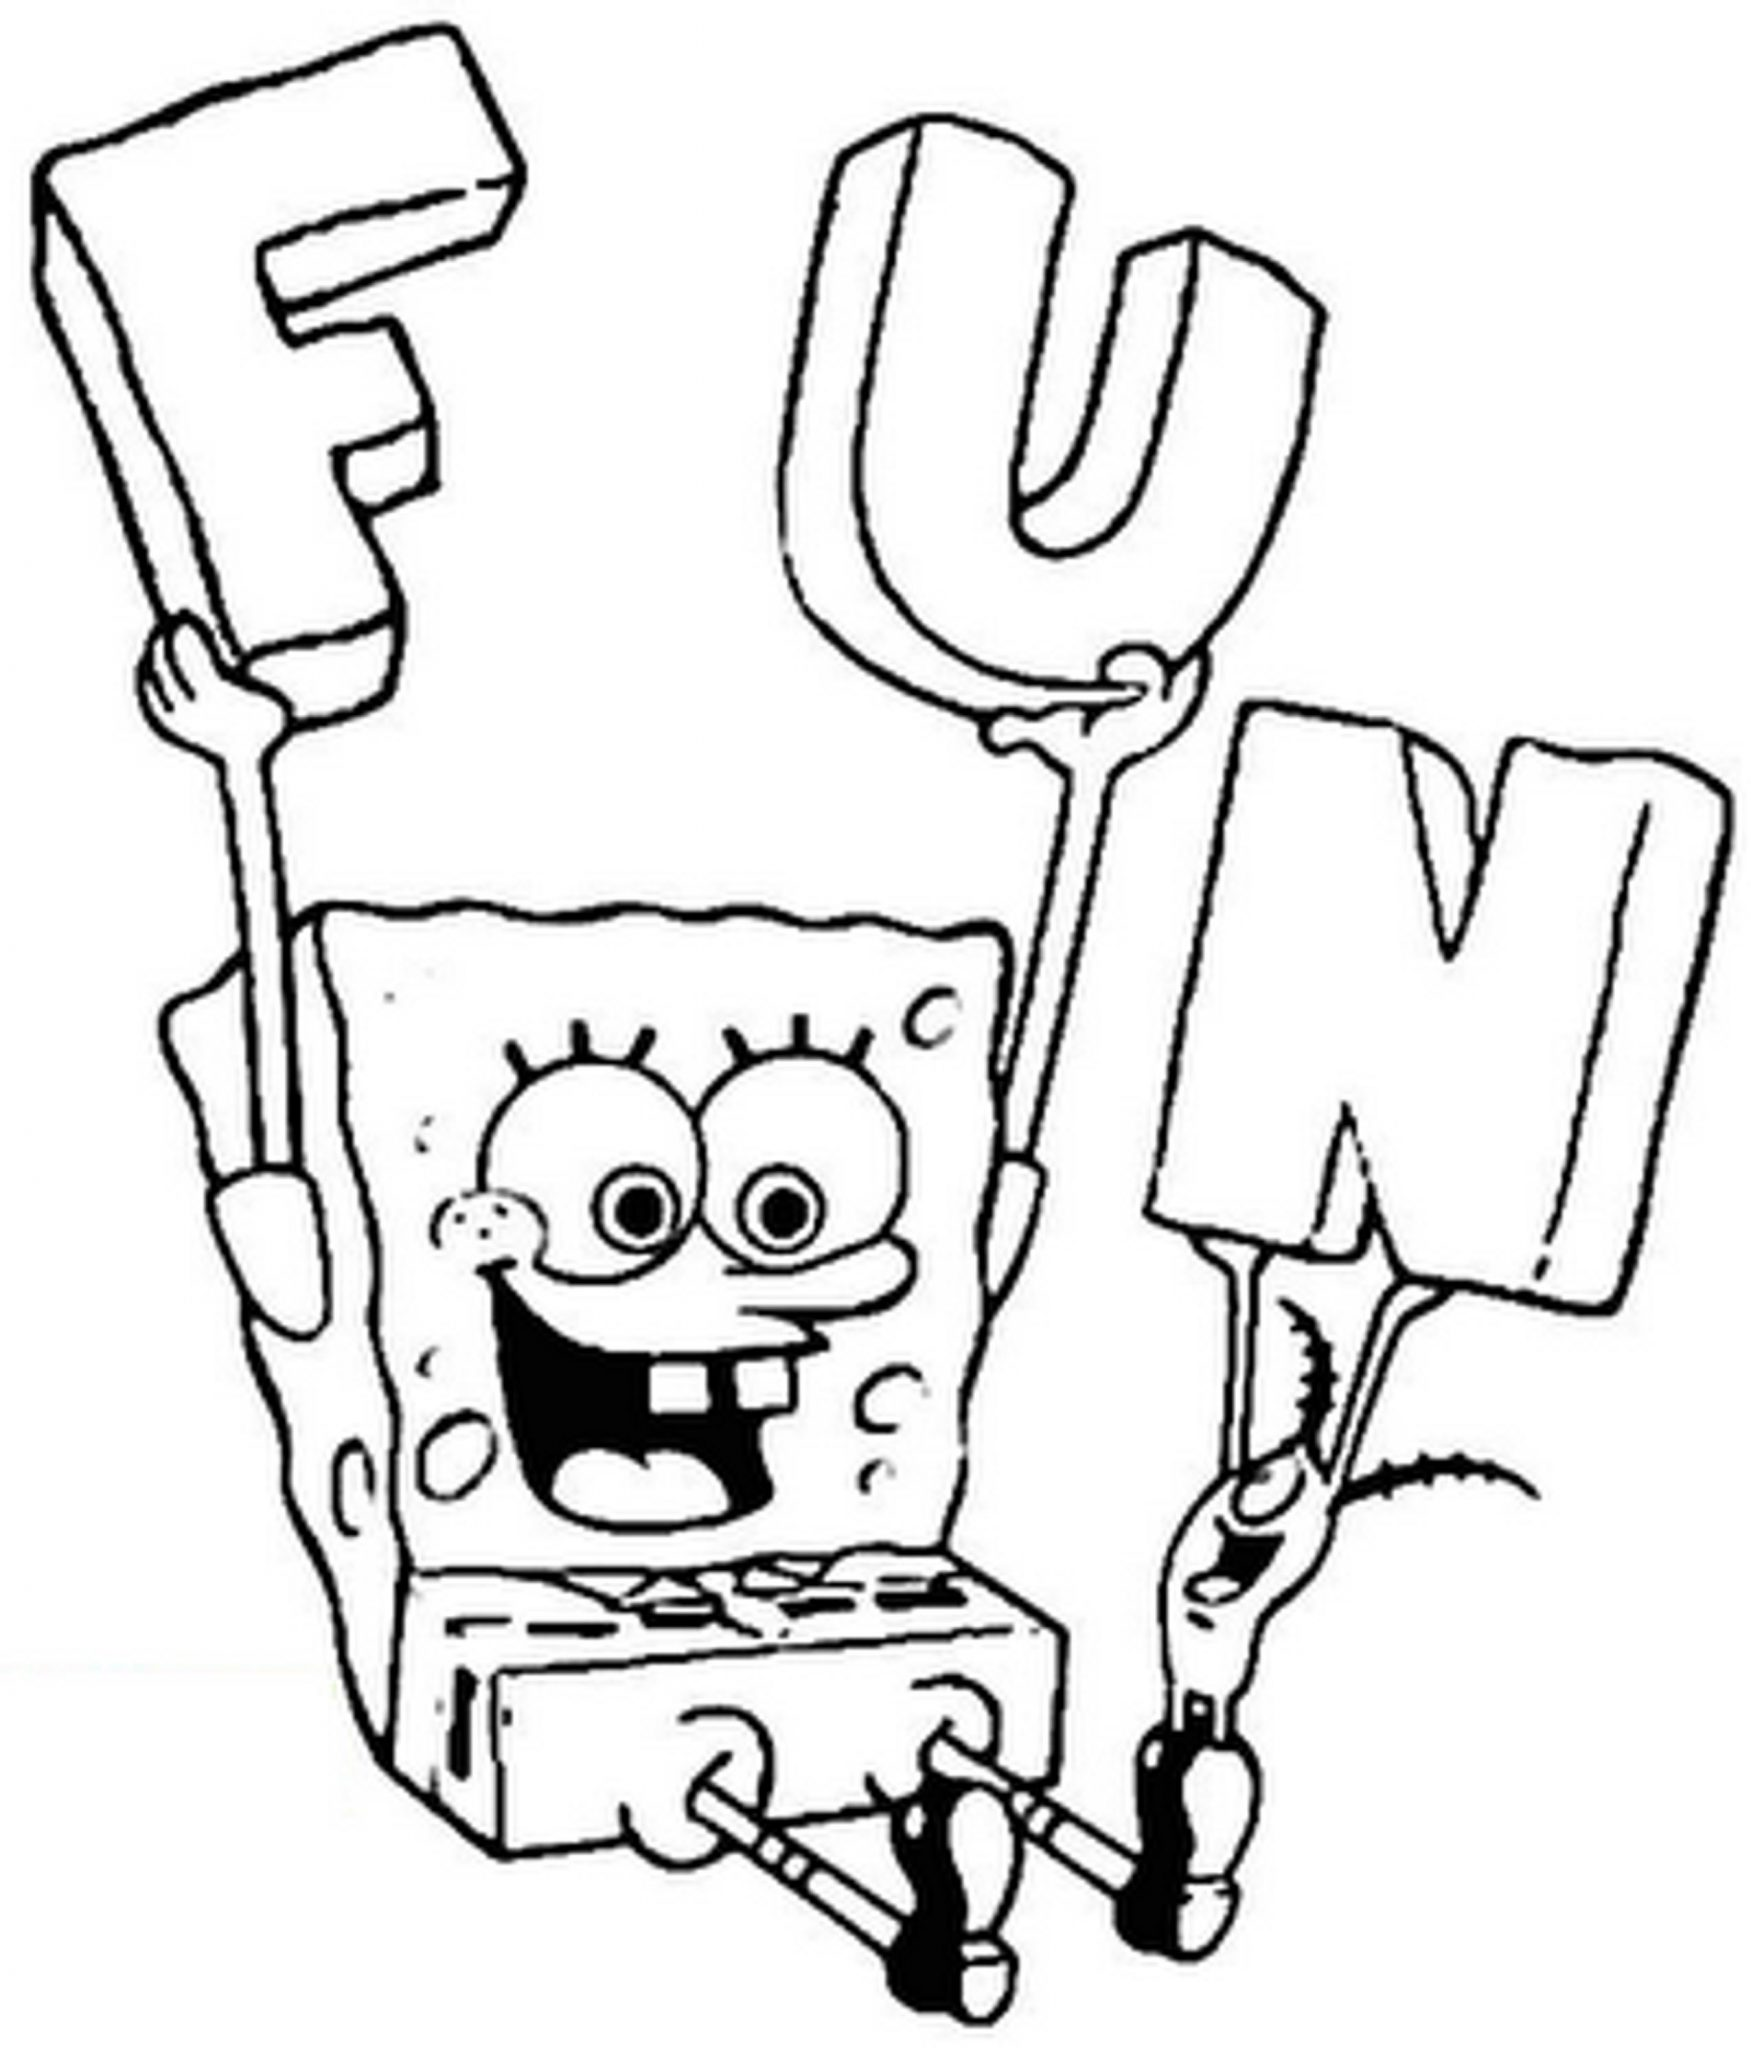 Spongebob Coloring Pages Printable